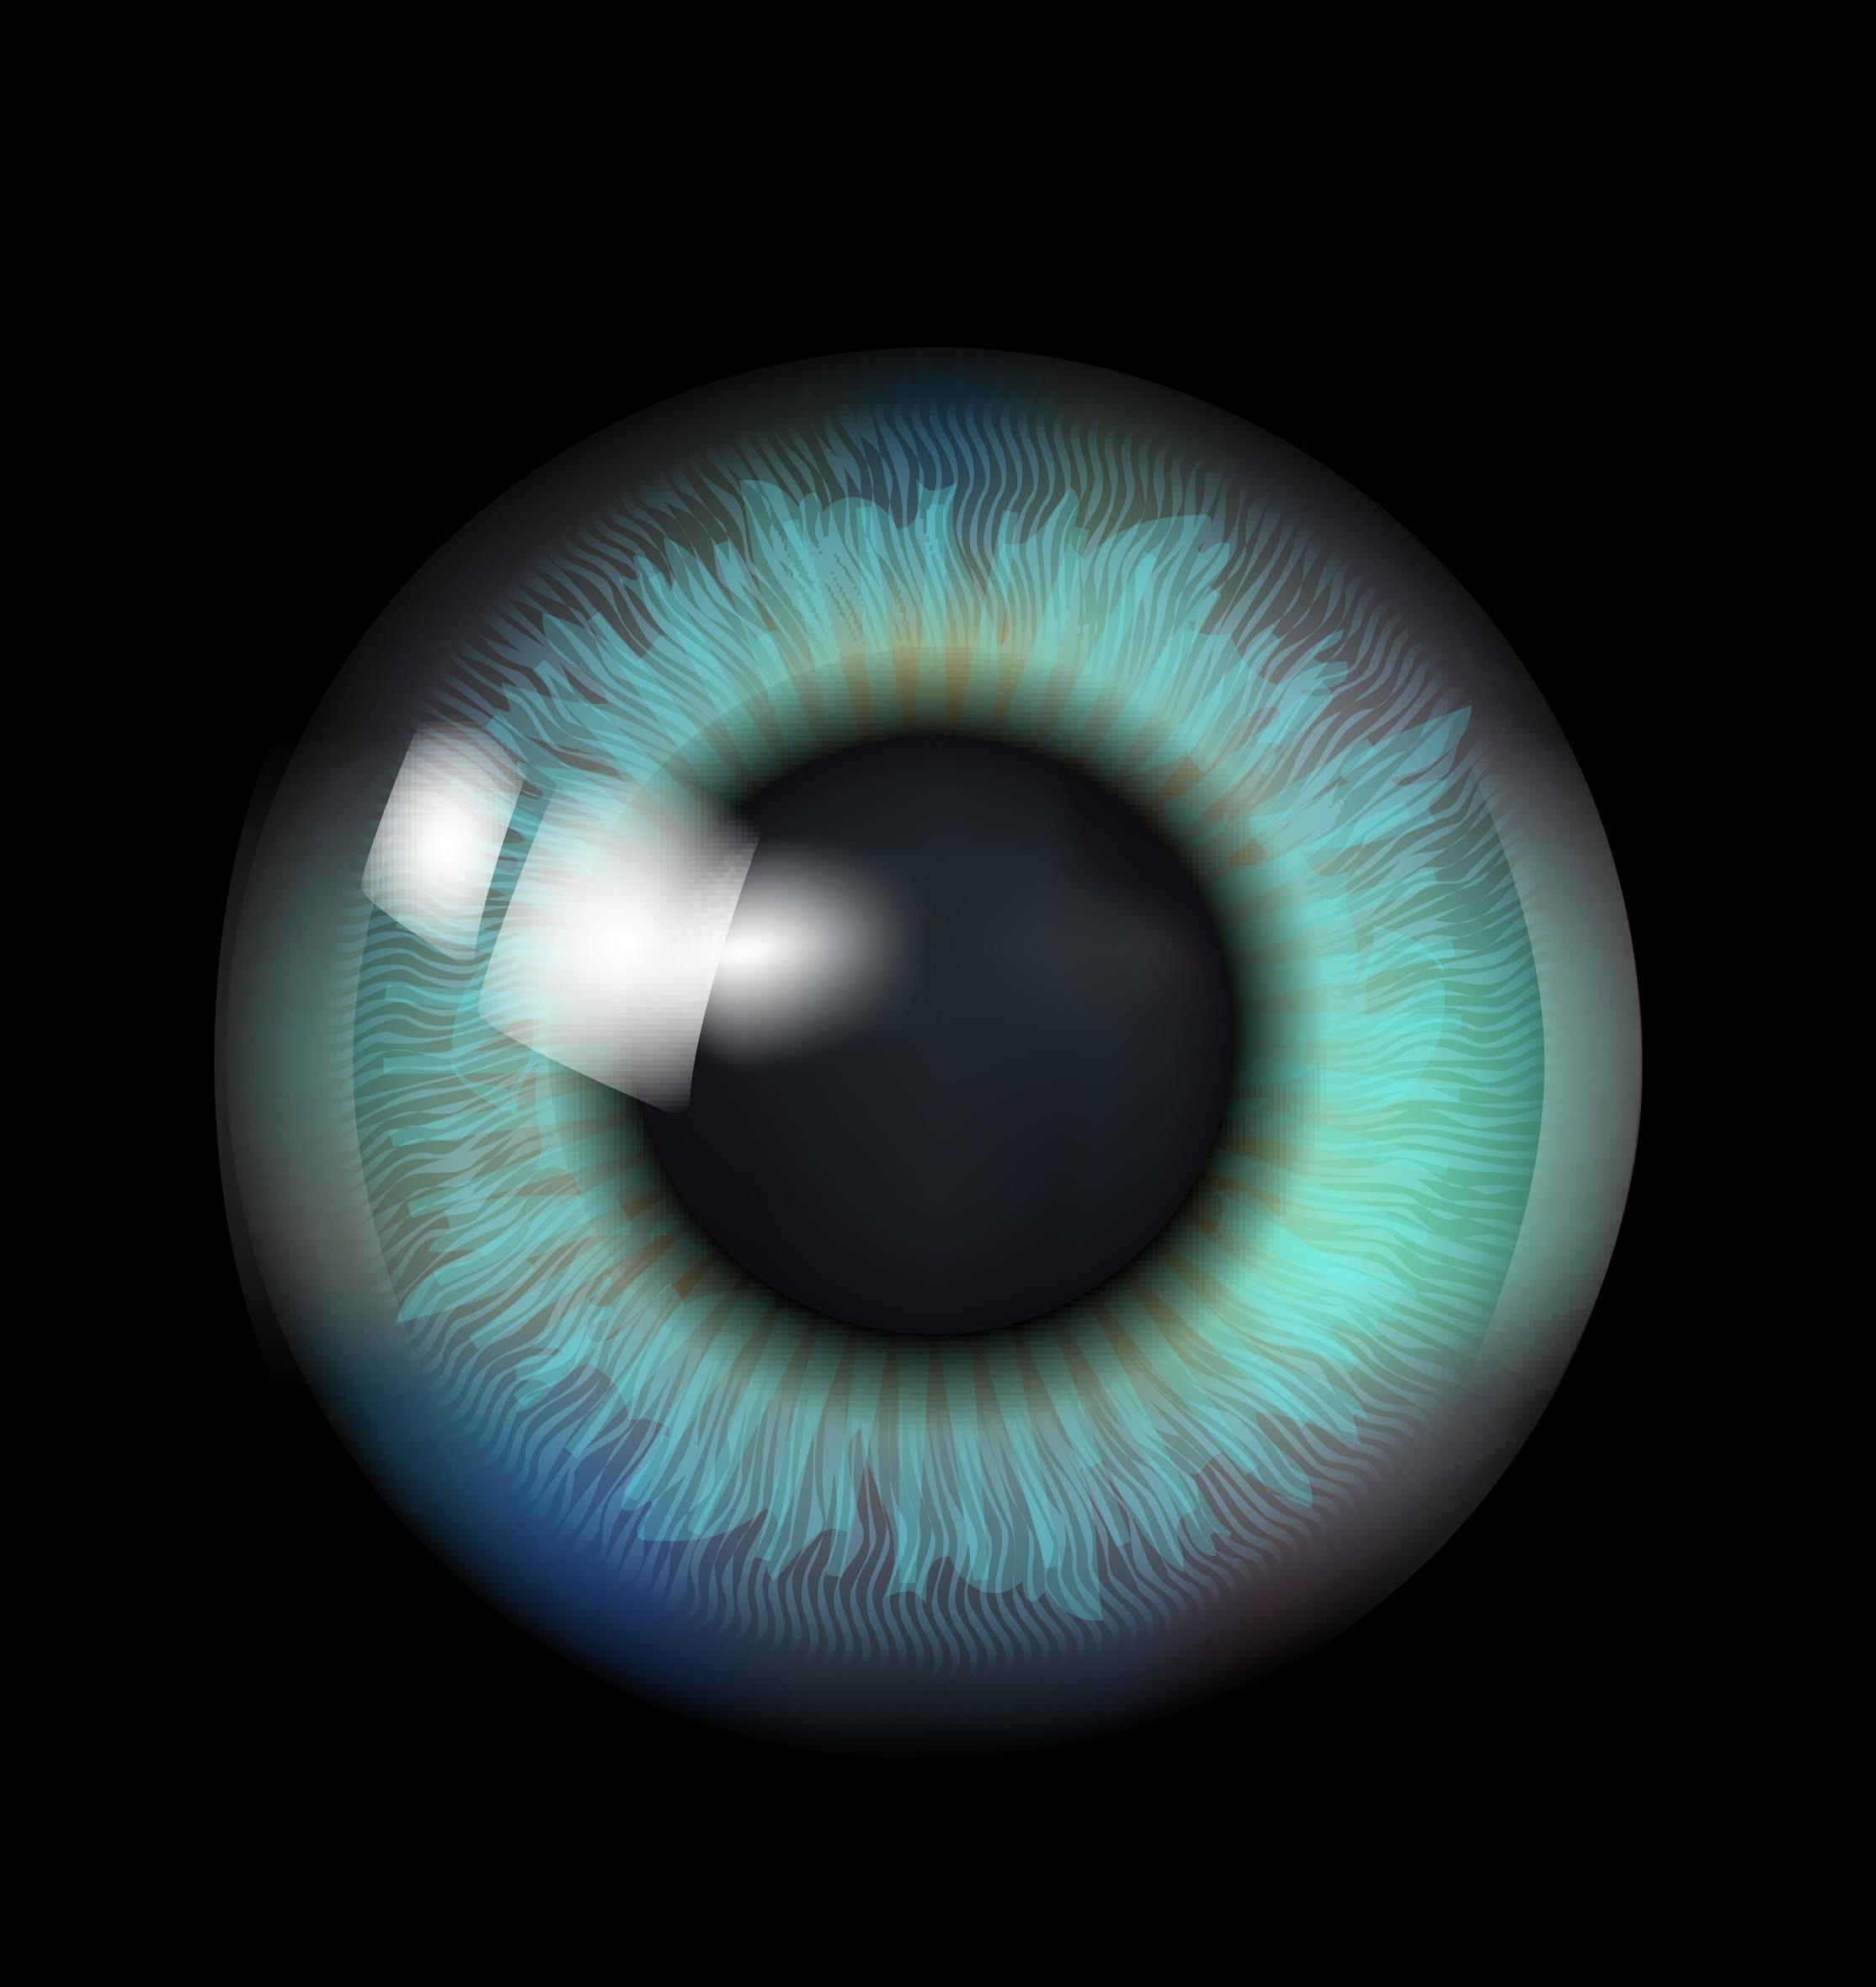 A large eye indicating digital intelligence